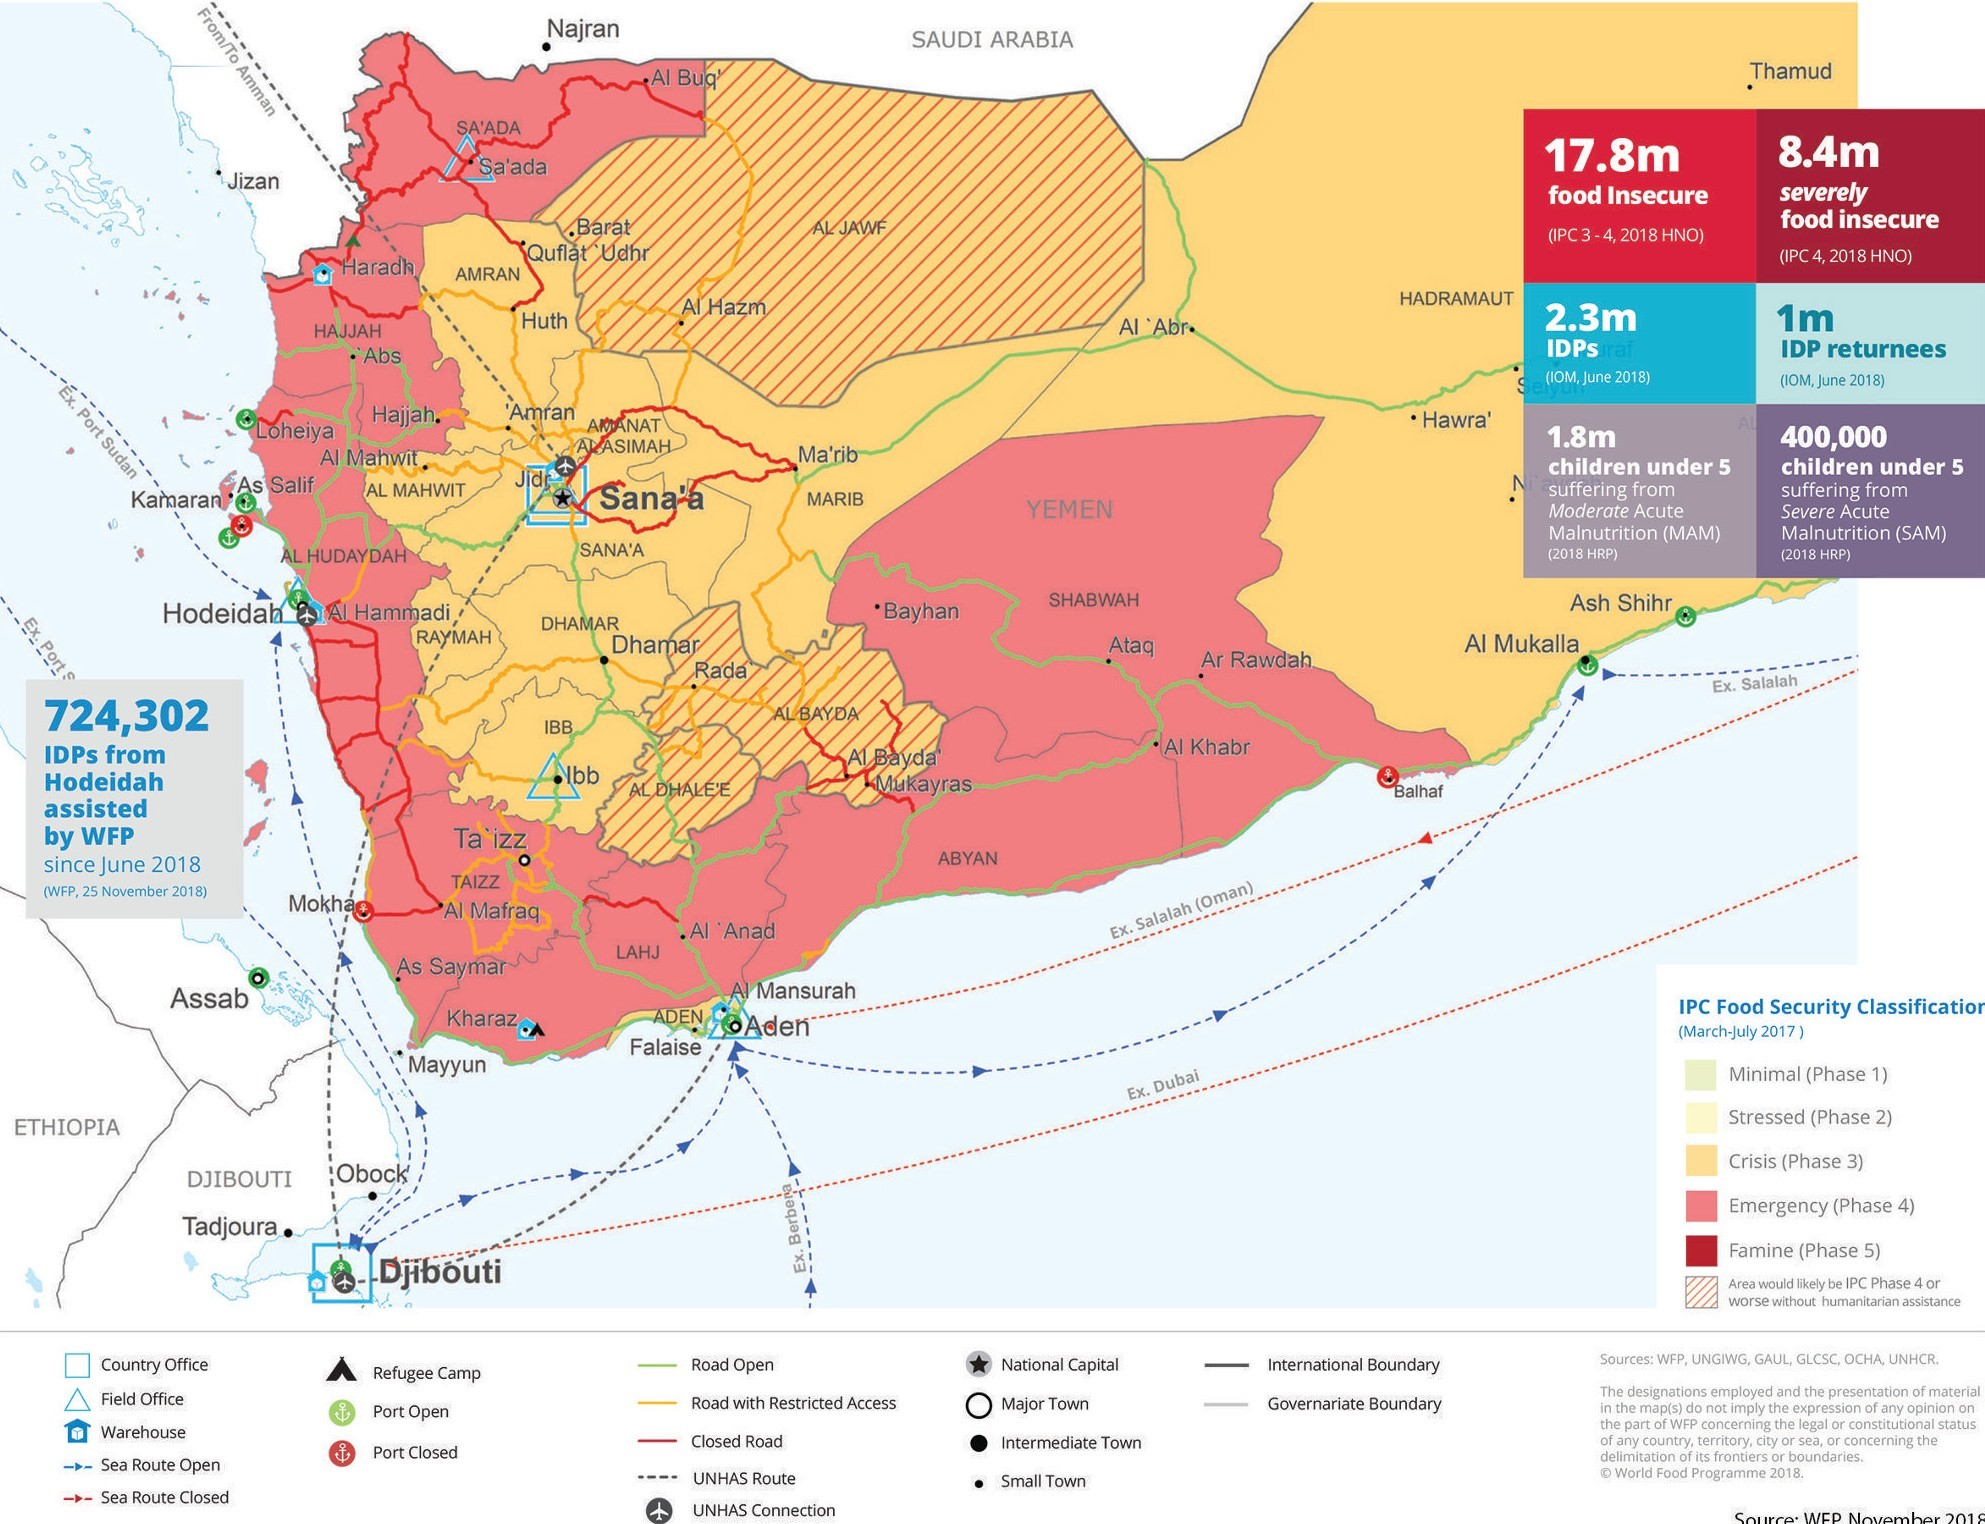 Yemen Policy Report # 4 - A Weapon of War in Yemen: An Analysis of